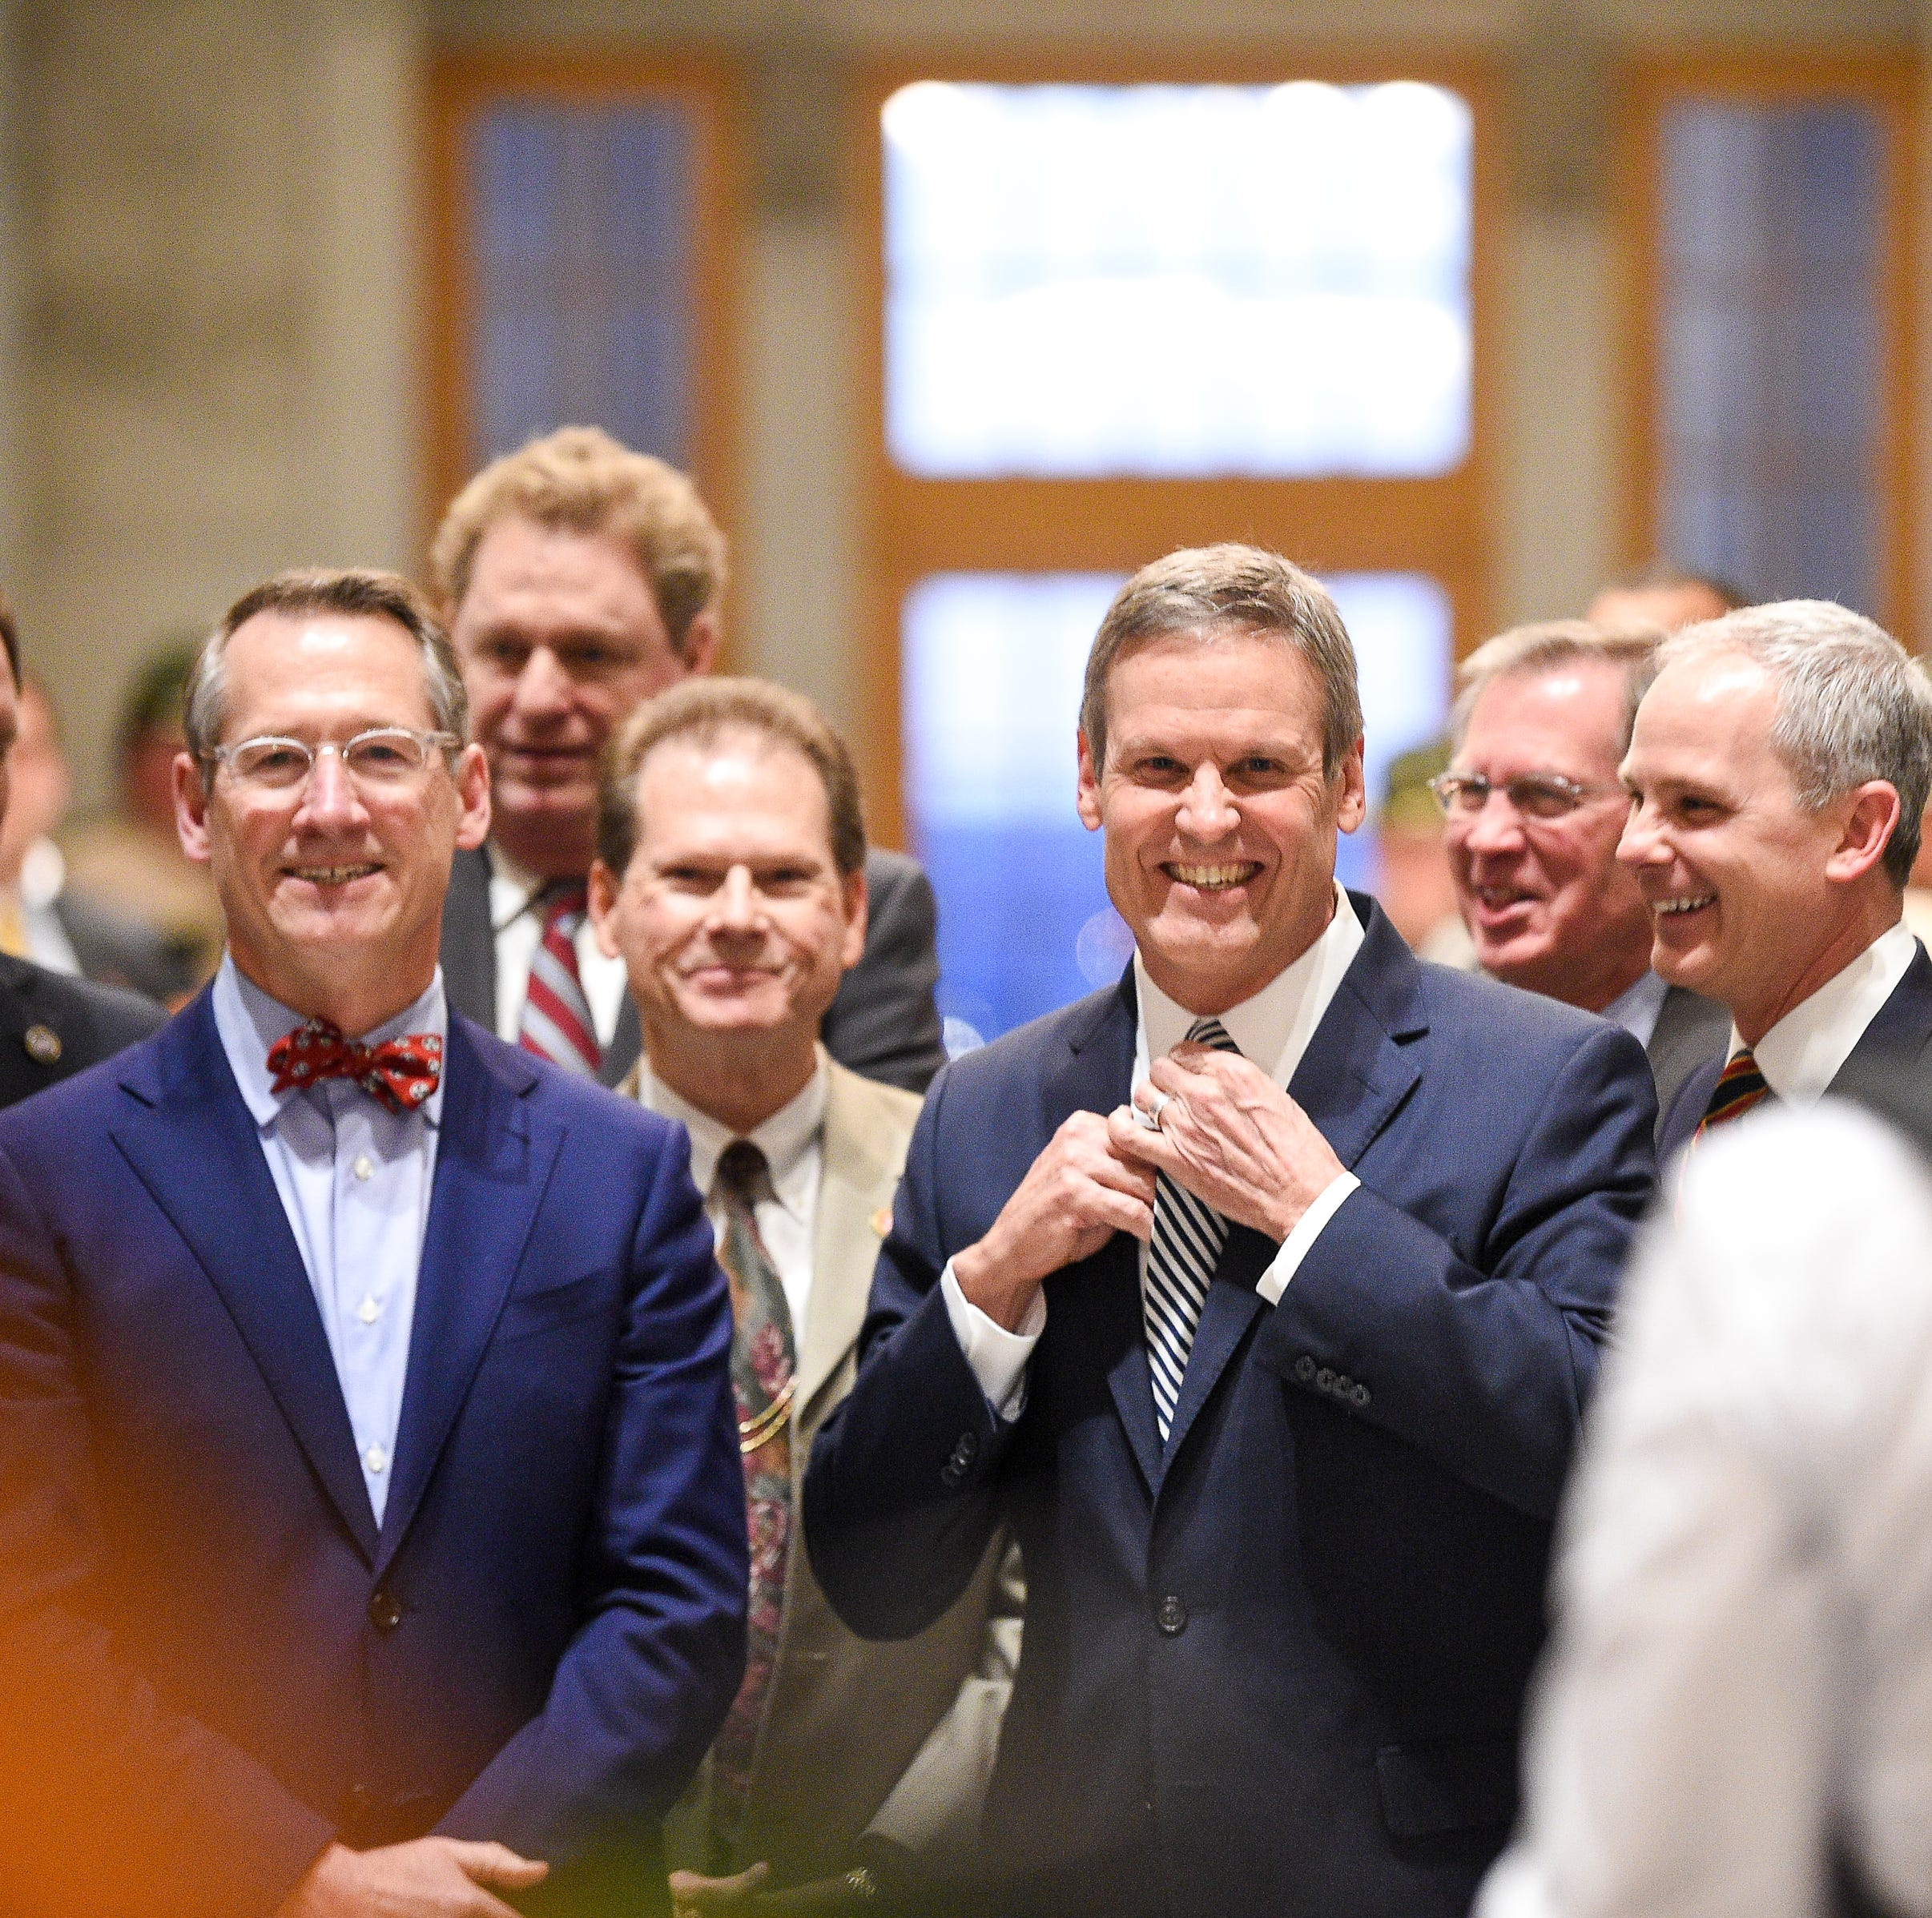 Gov. Bill Lee expands call for school choice, unveils $25M 'education savings account' plan